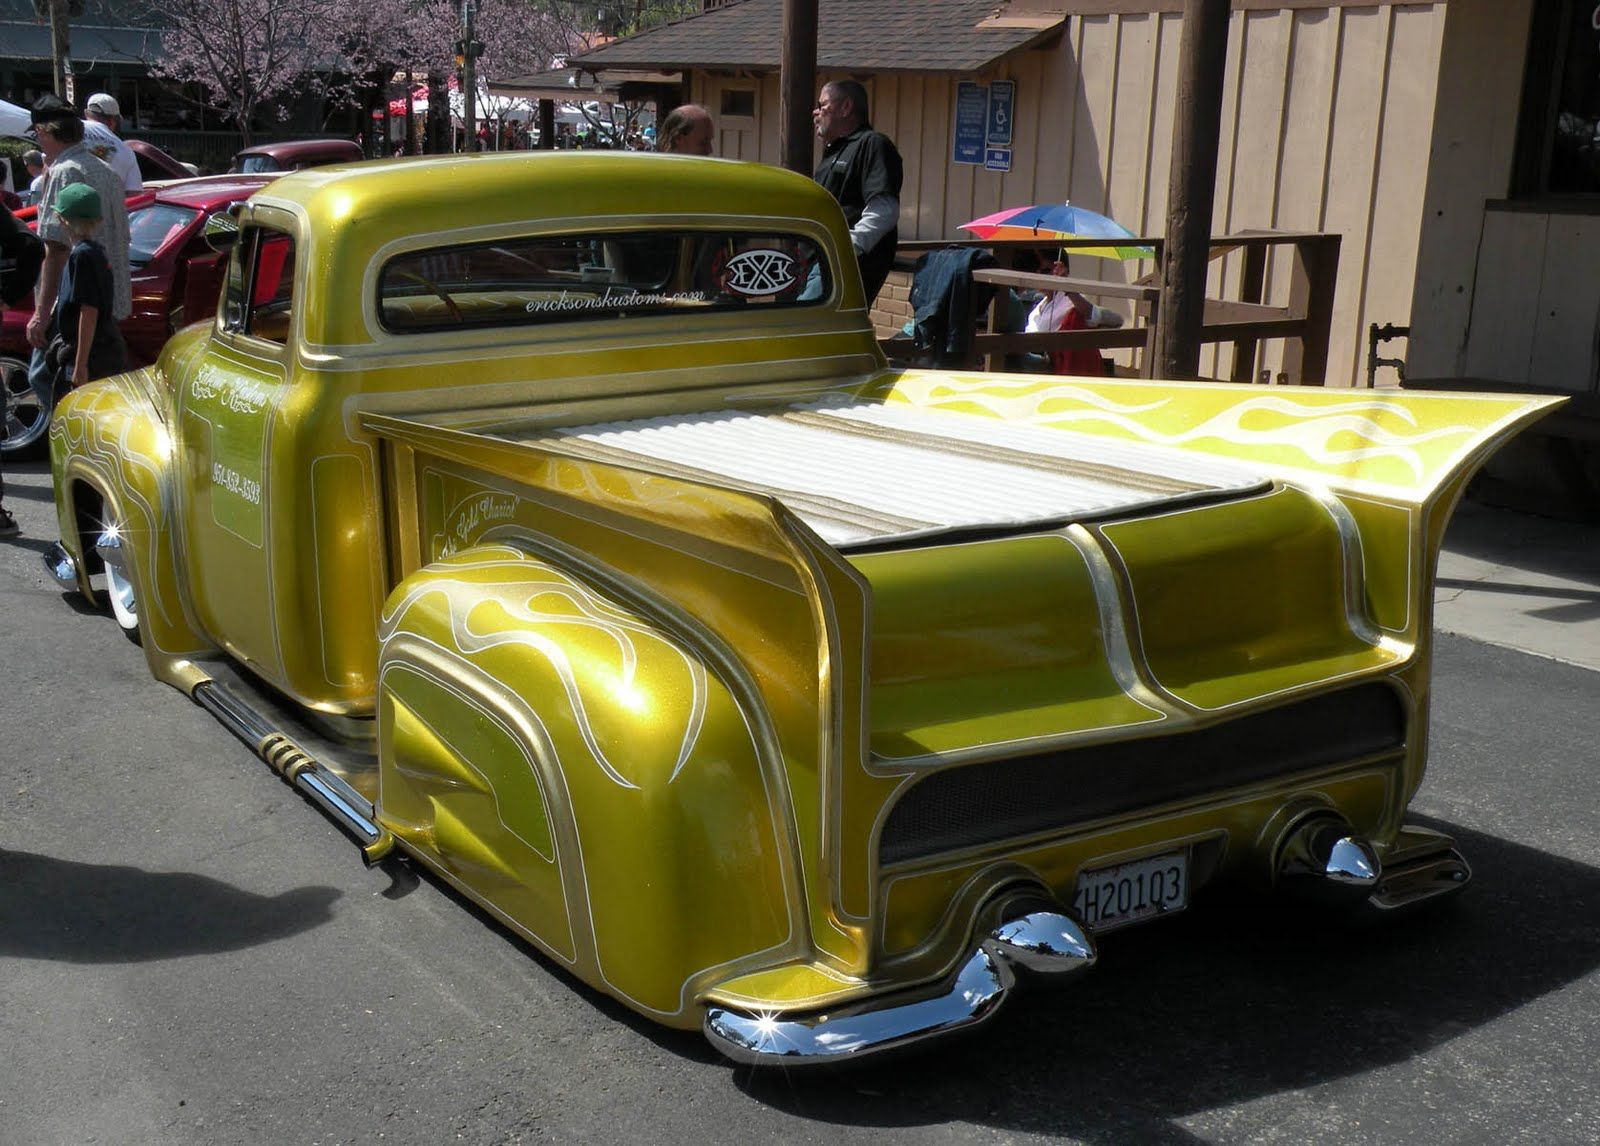 counts kustoms | Just a car guy: Extreme Kustoms truck at Temecula ...